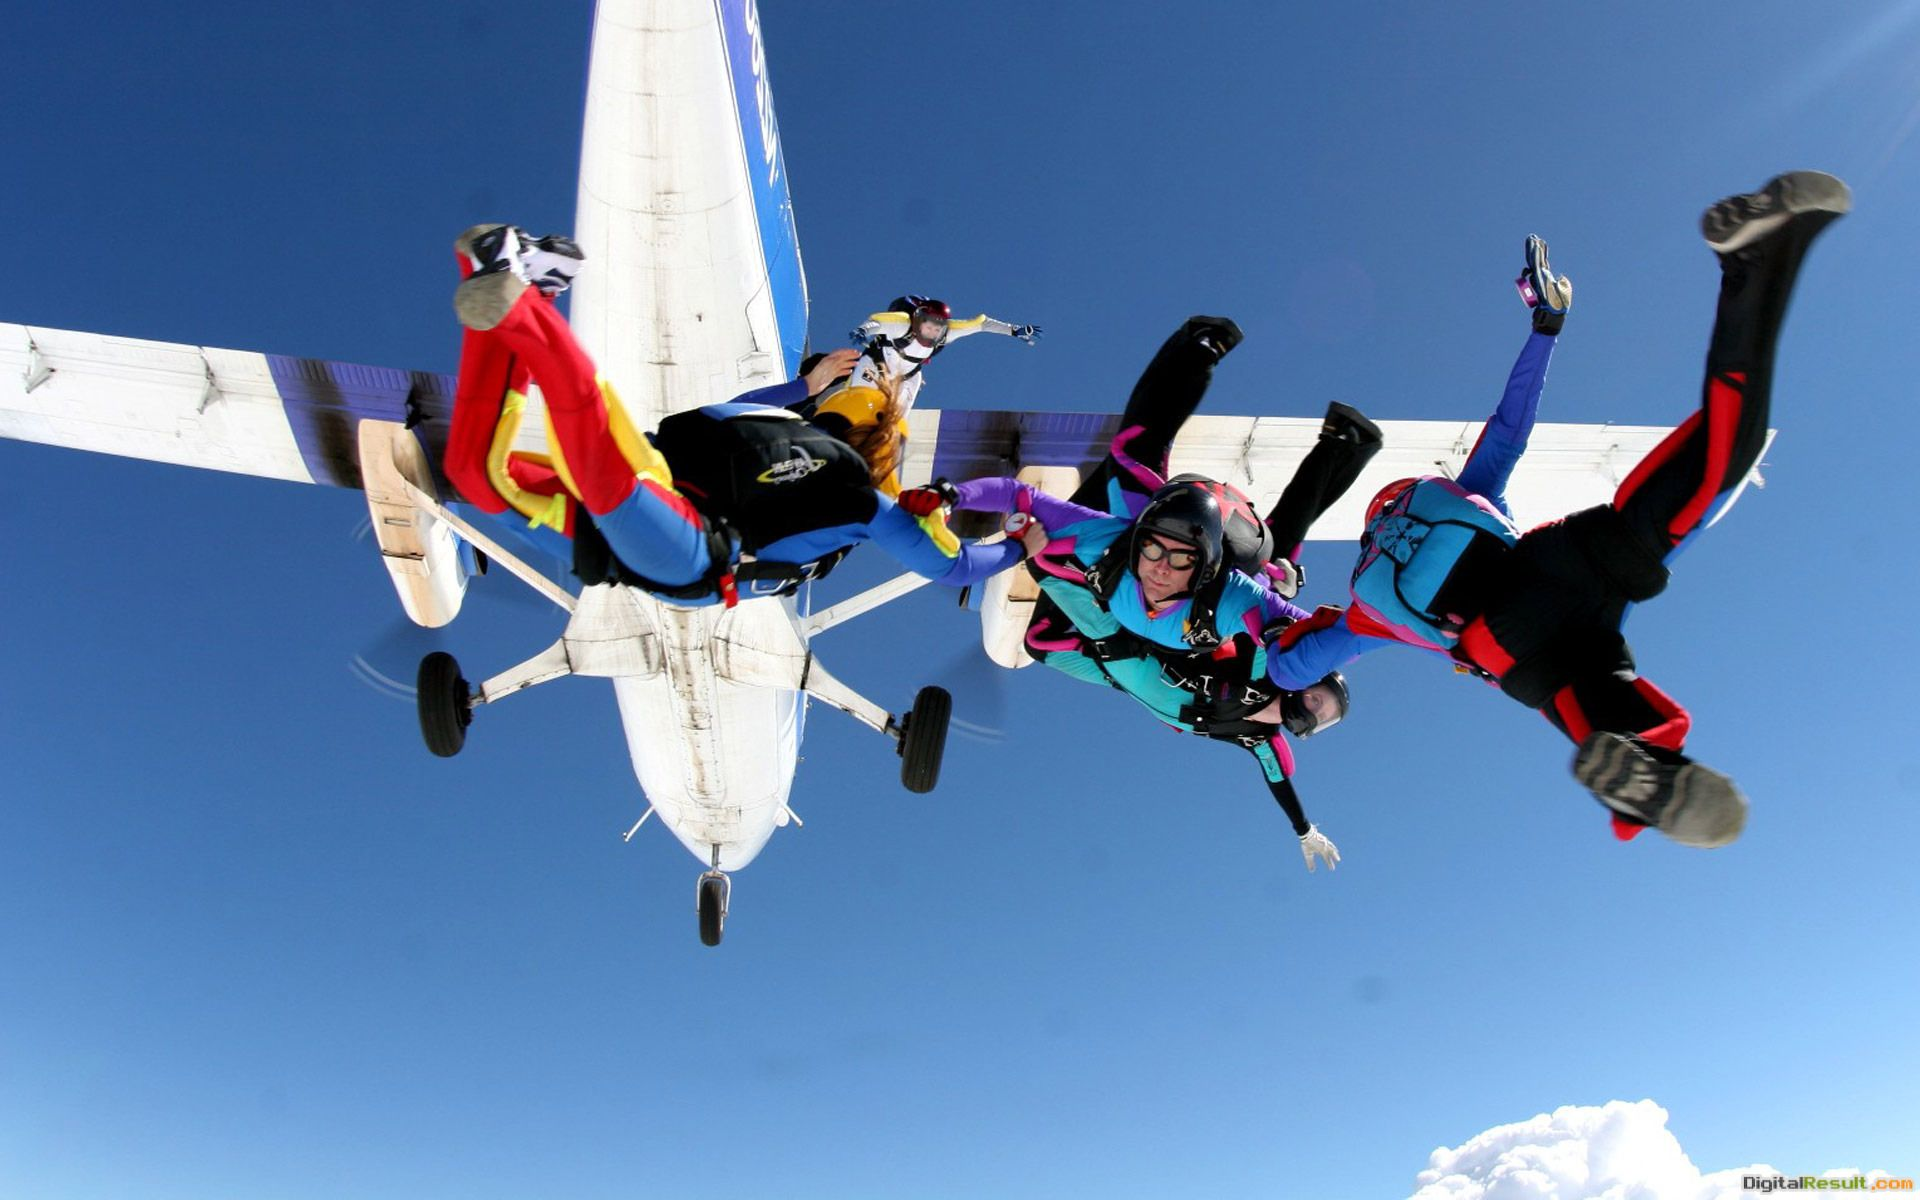 Skydivers Sport Wallpaper HD 1920x1200 #1693 288